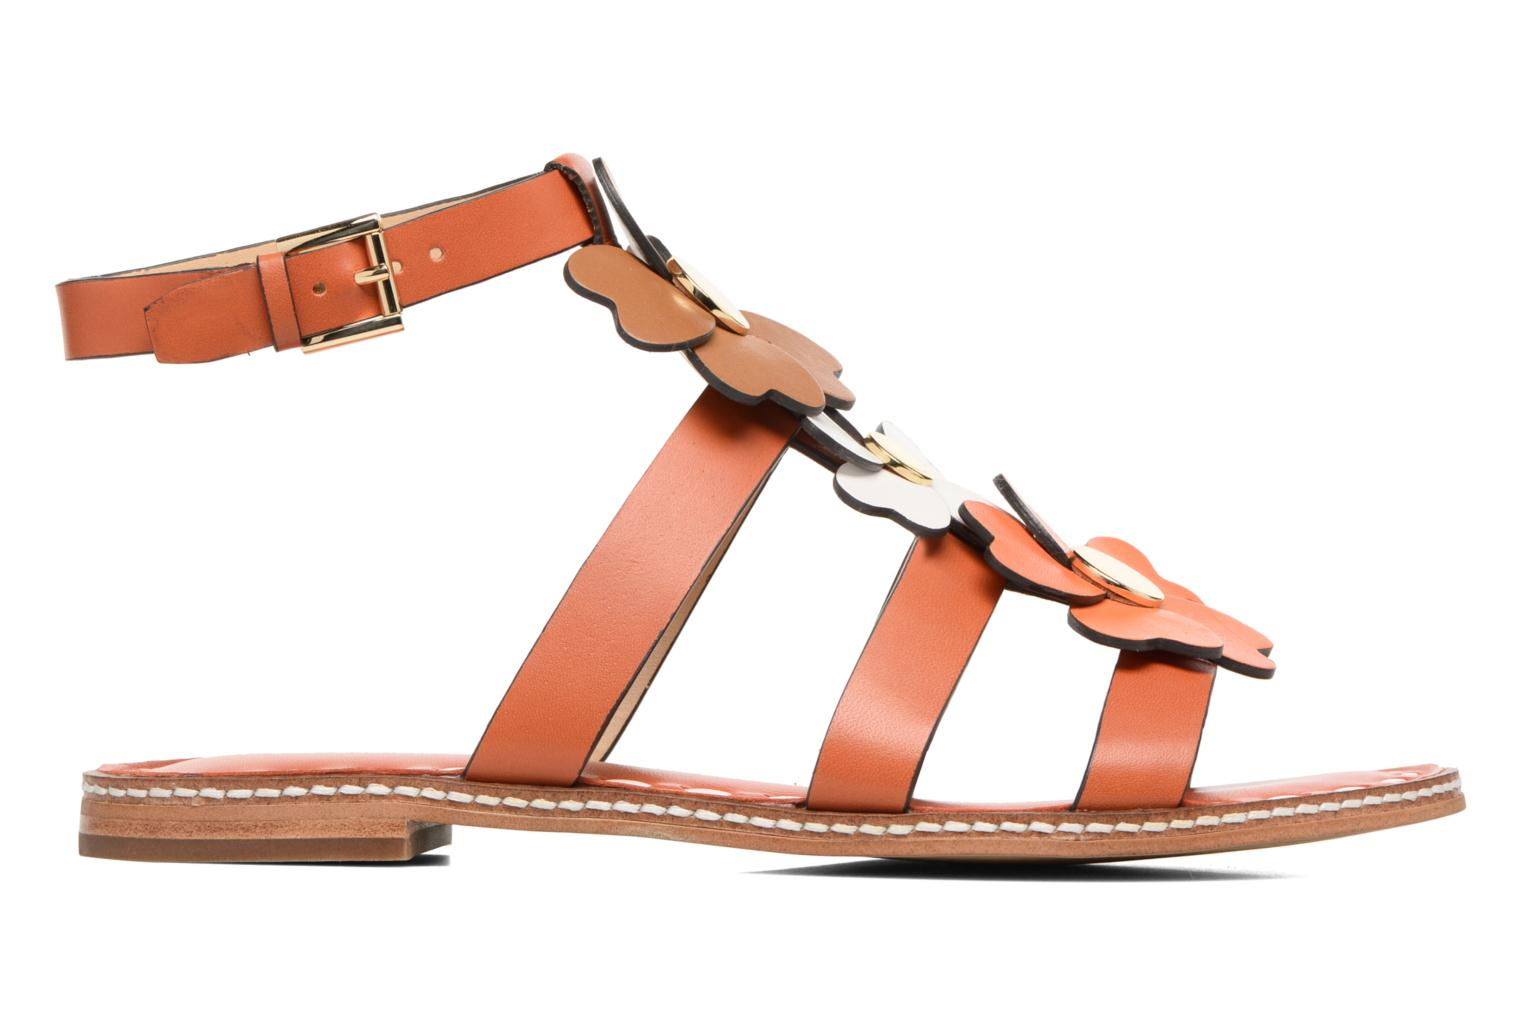 Kit Flat Sandal Orange/Acorn